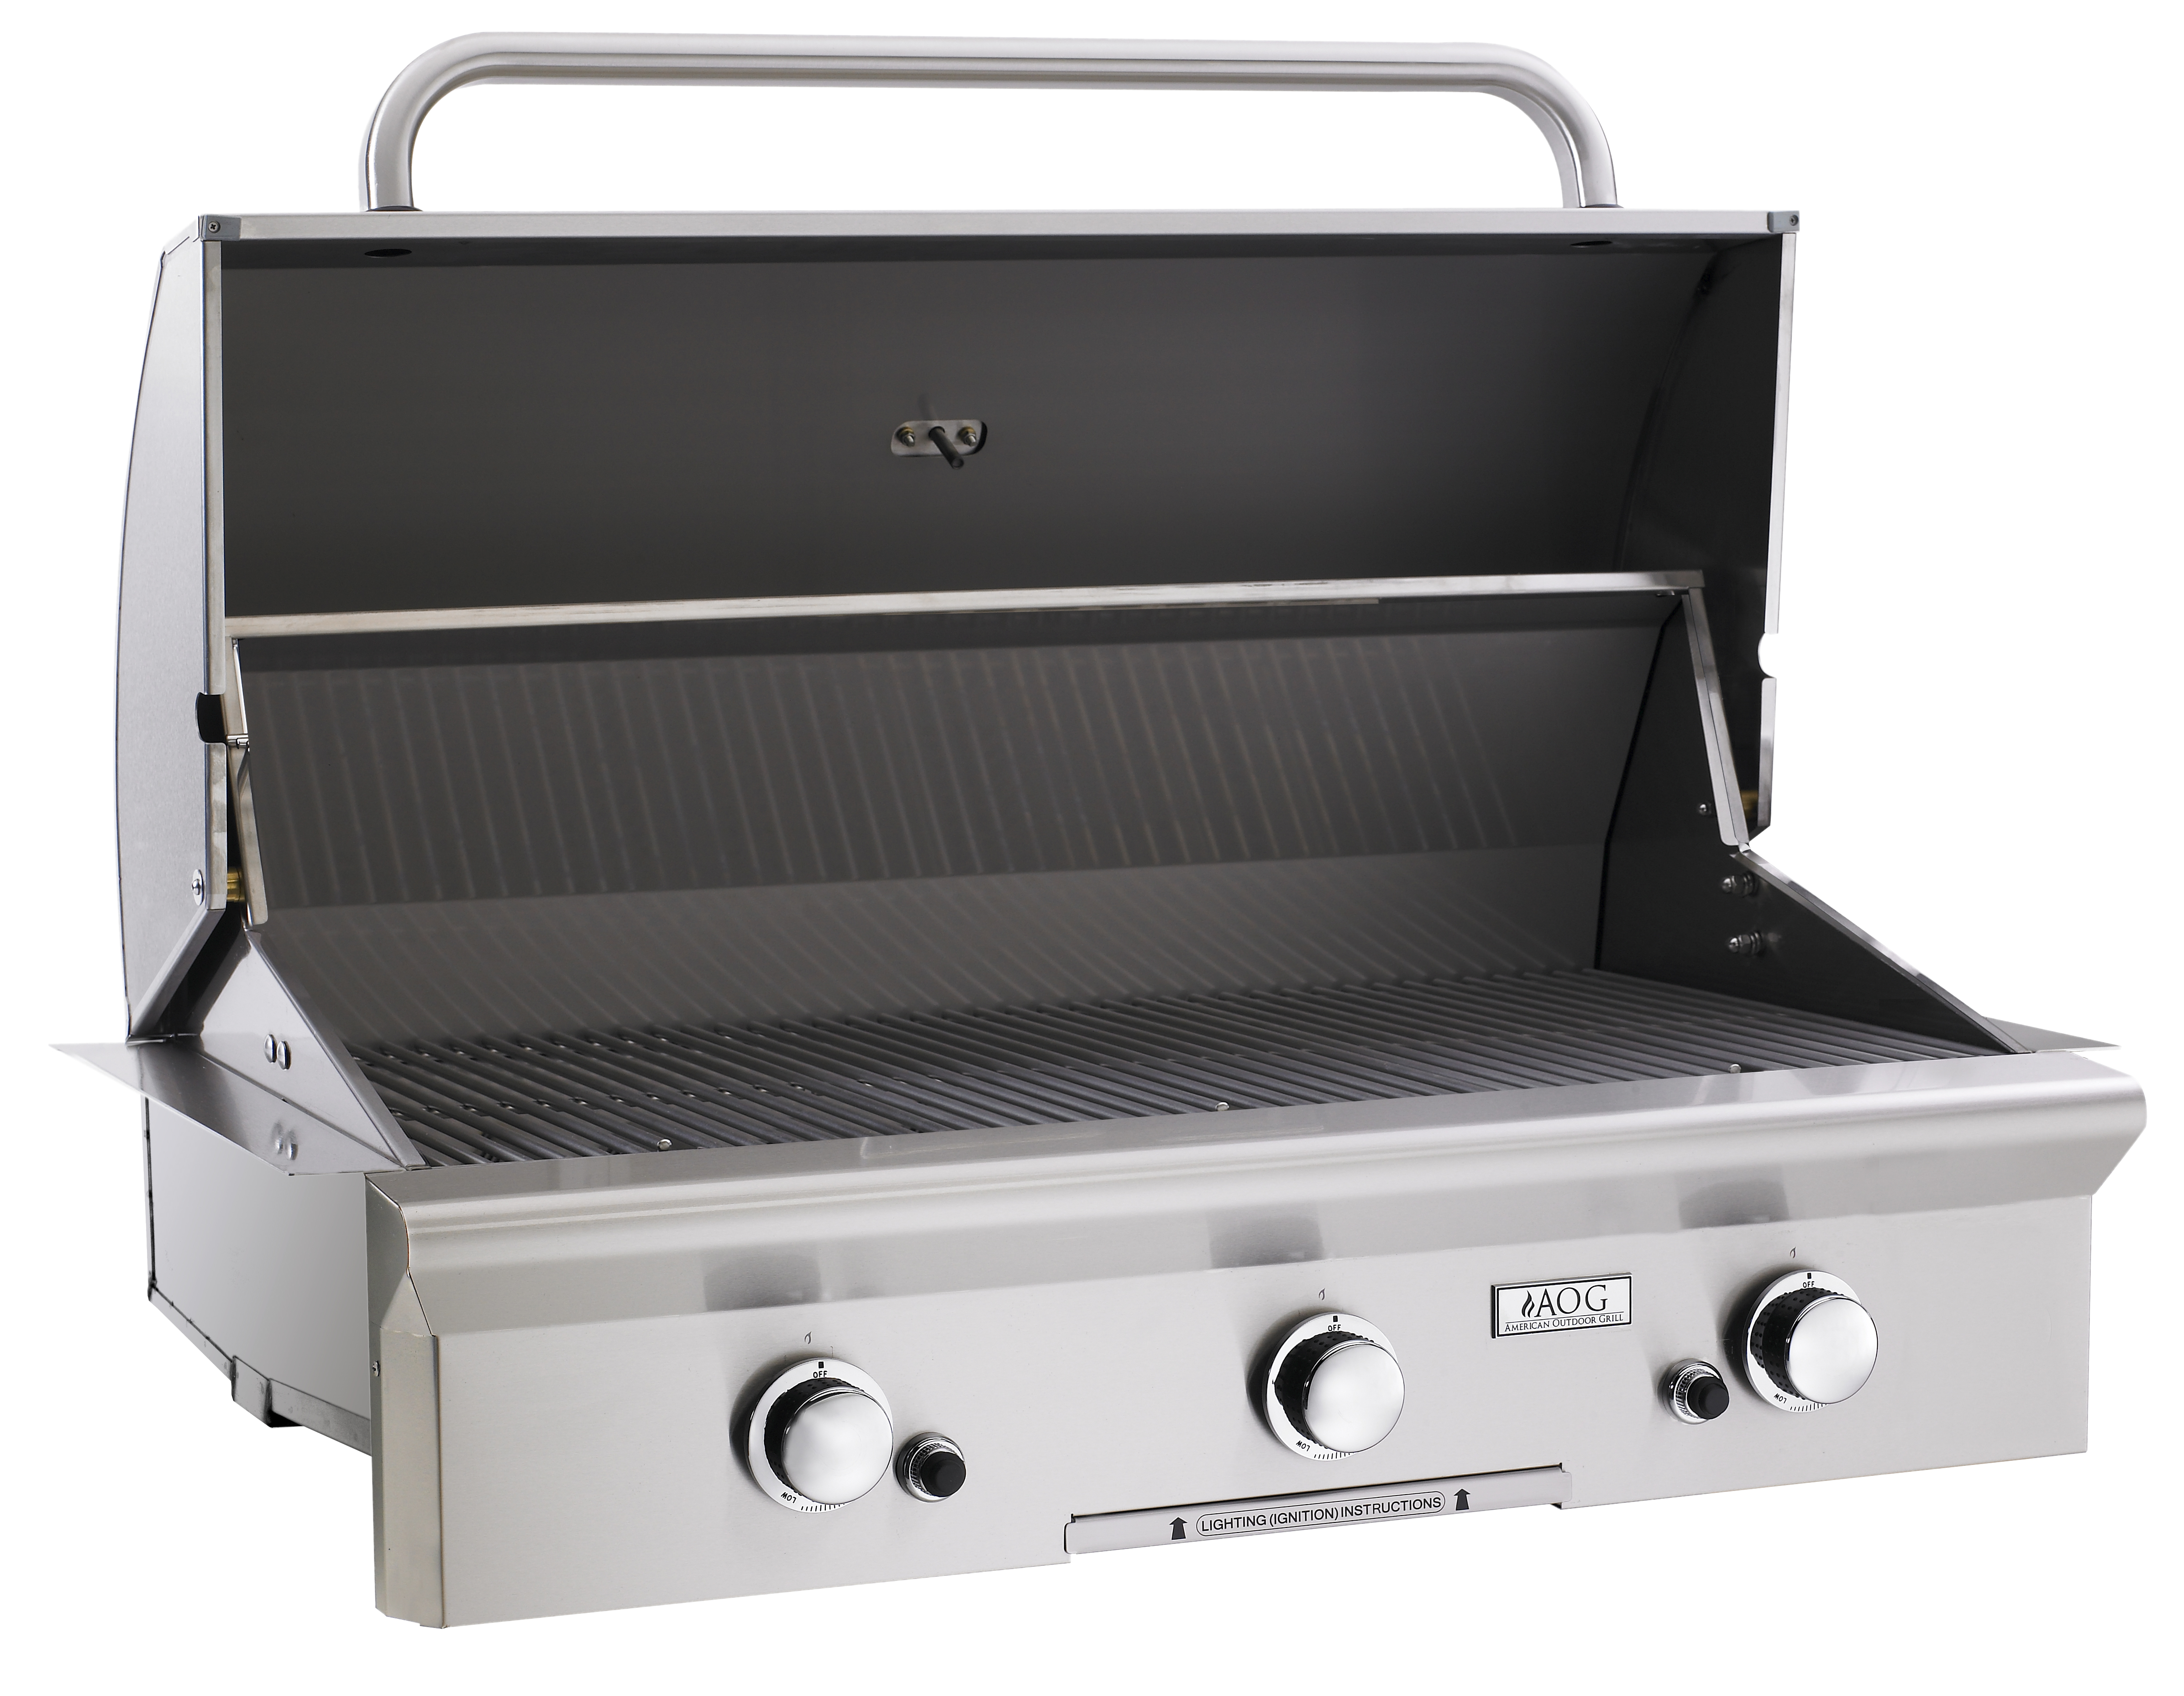 Aog Grill 36 Inch Build In Gas Grill Fireside Outdoor